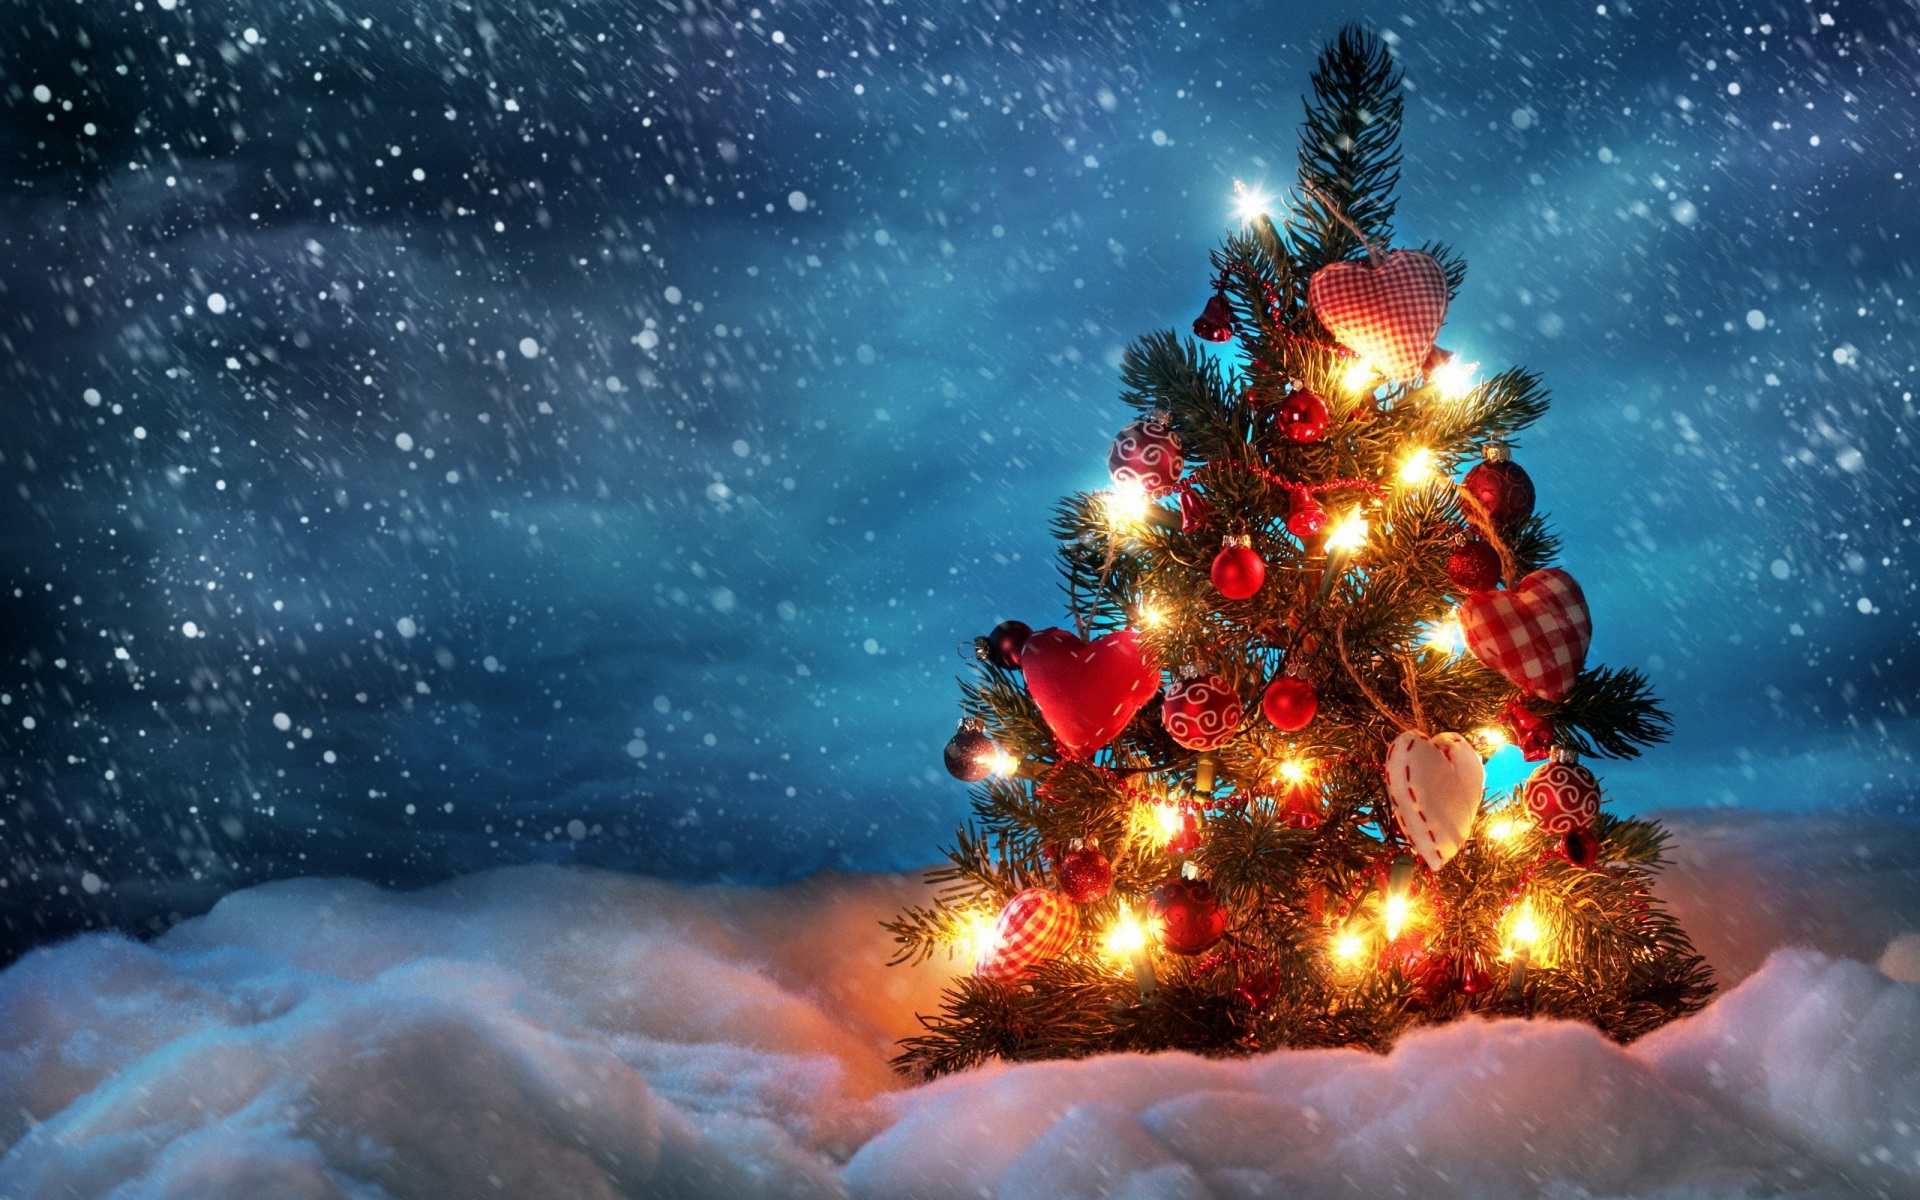 download 40 beautiful christmas tree wallpaper free